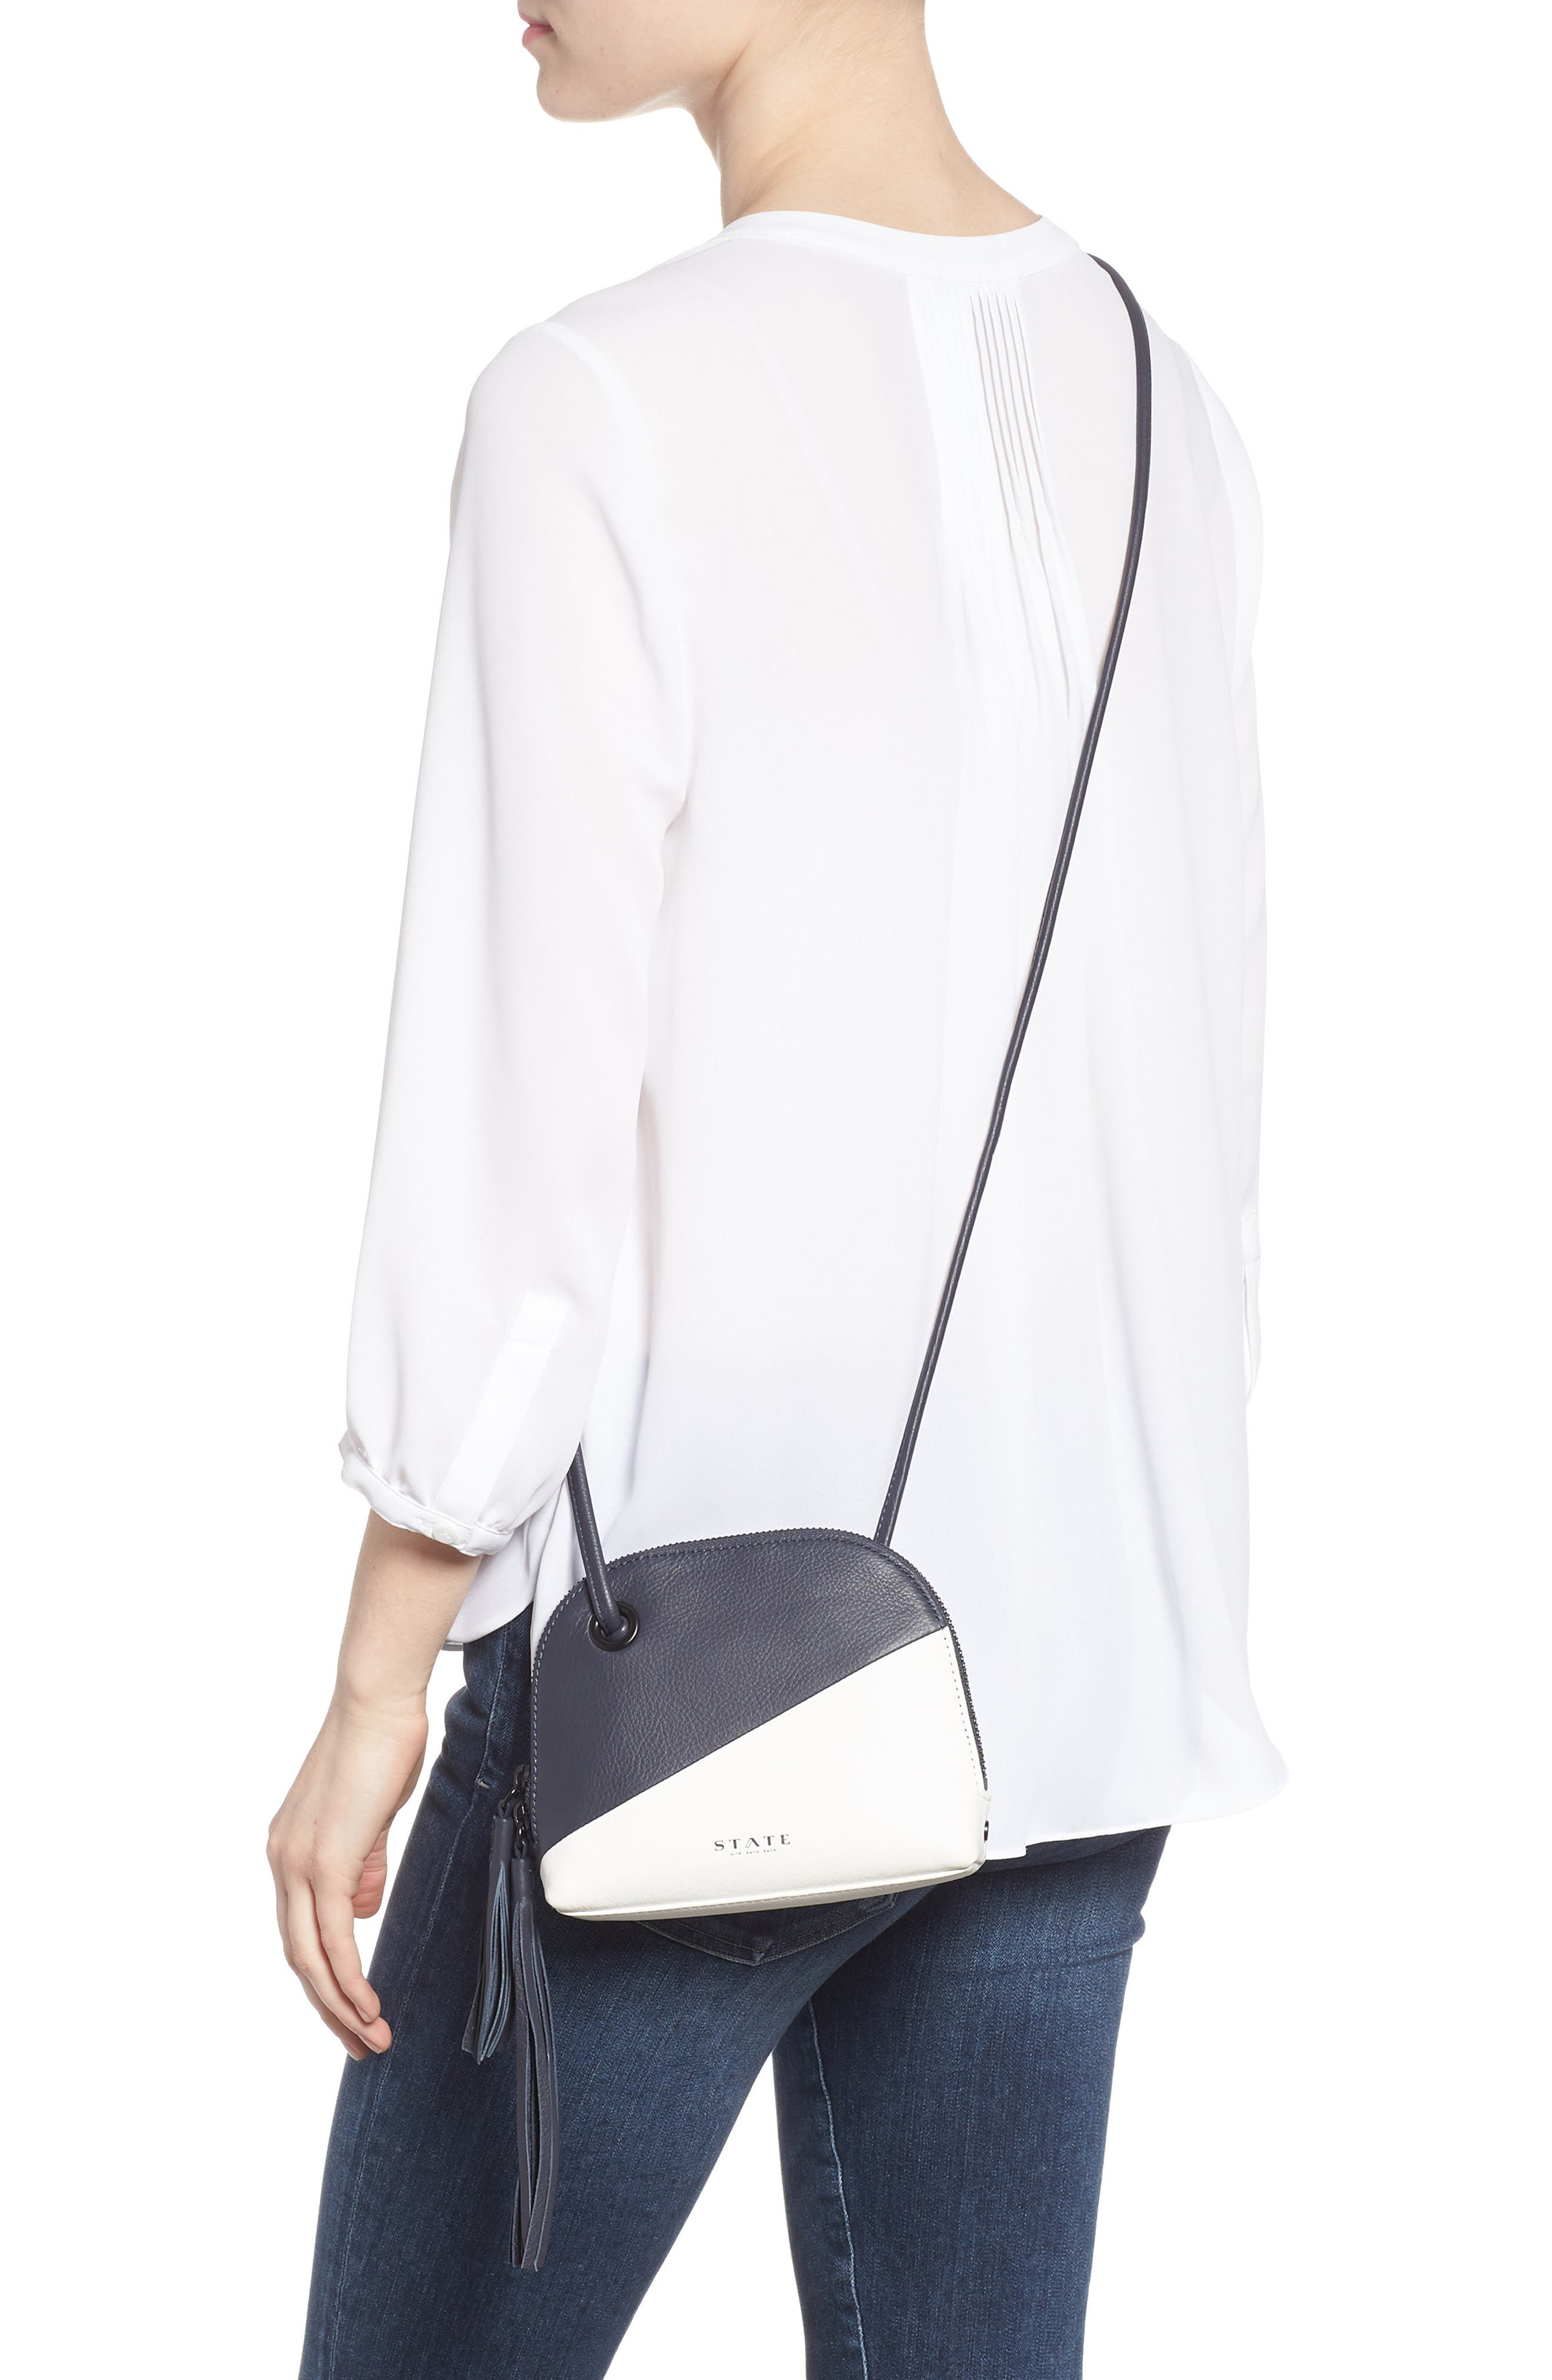 Kay Colorblock Leather Crossbody,                             Alternate thumbnail 2, color,                             NAVY/ WHITE